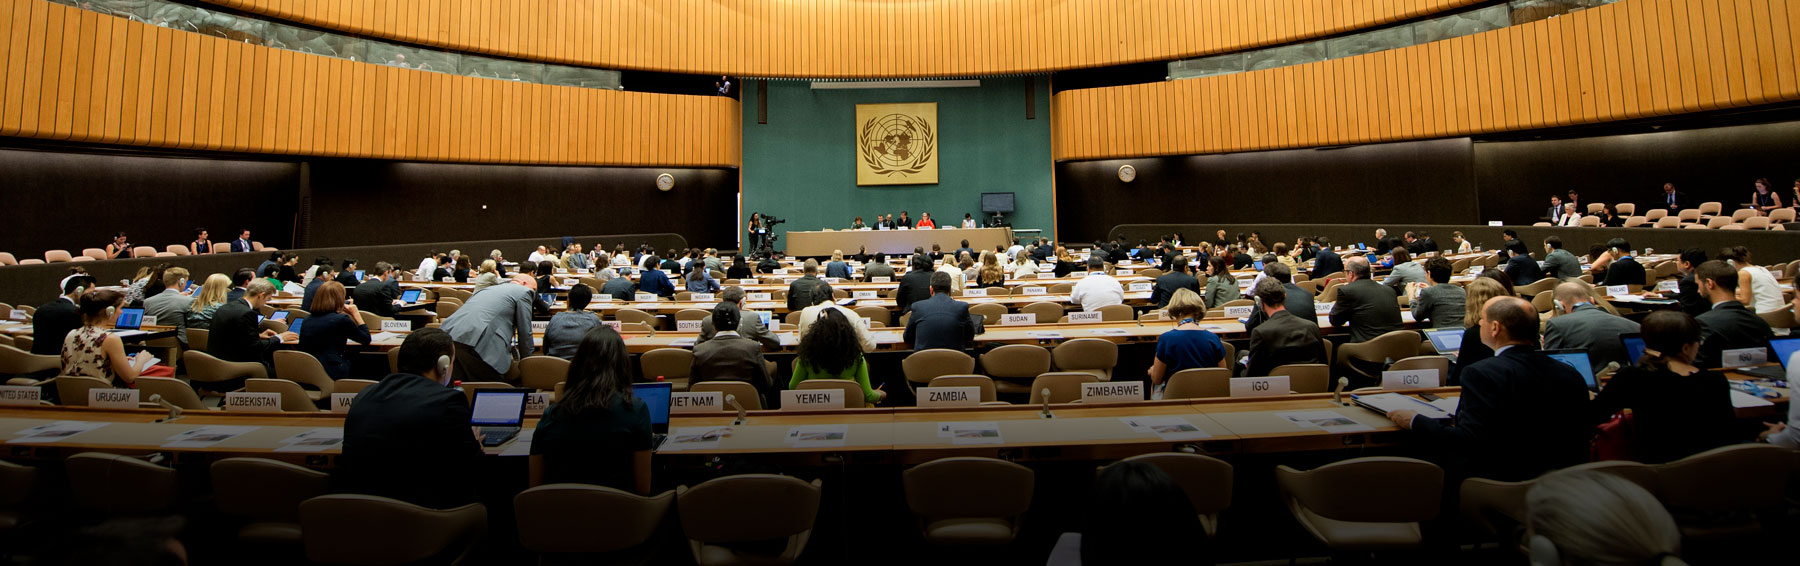 Talks on the Global Compact on Migration (Photo: UN Geneva/Flickr)